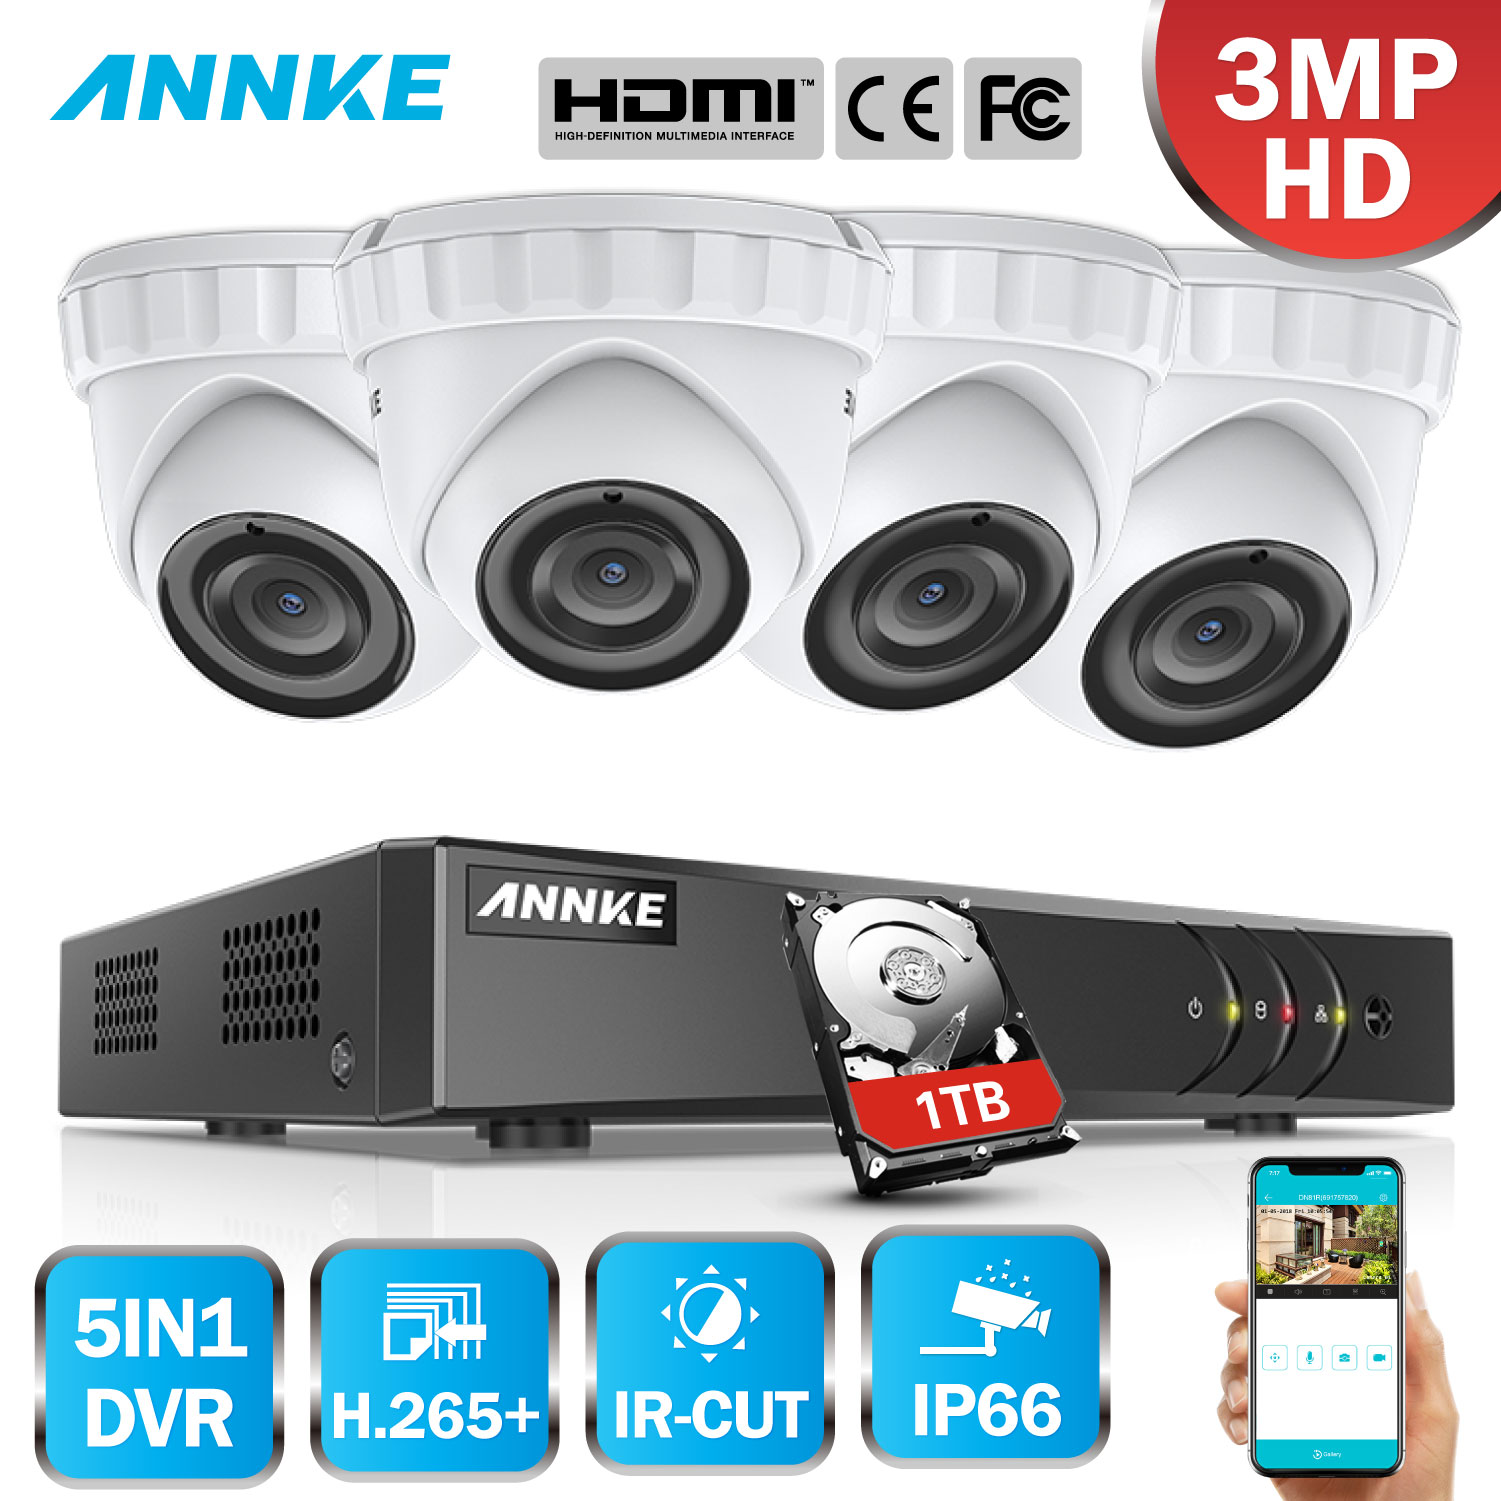 ANNKE 8CH 3MP 5in1 CCTV DVR HD 4PCS 3MP TVI Security Camera Outdoor Weatherproof Dome Camera